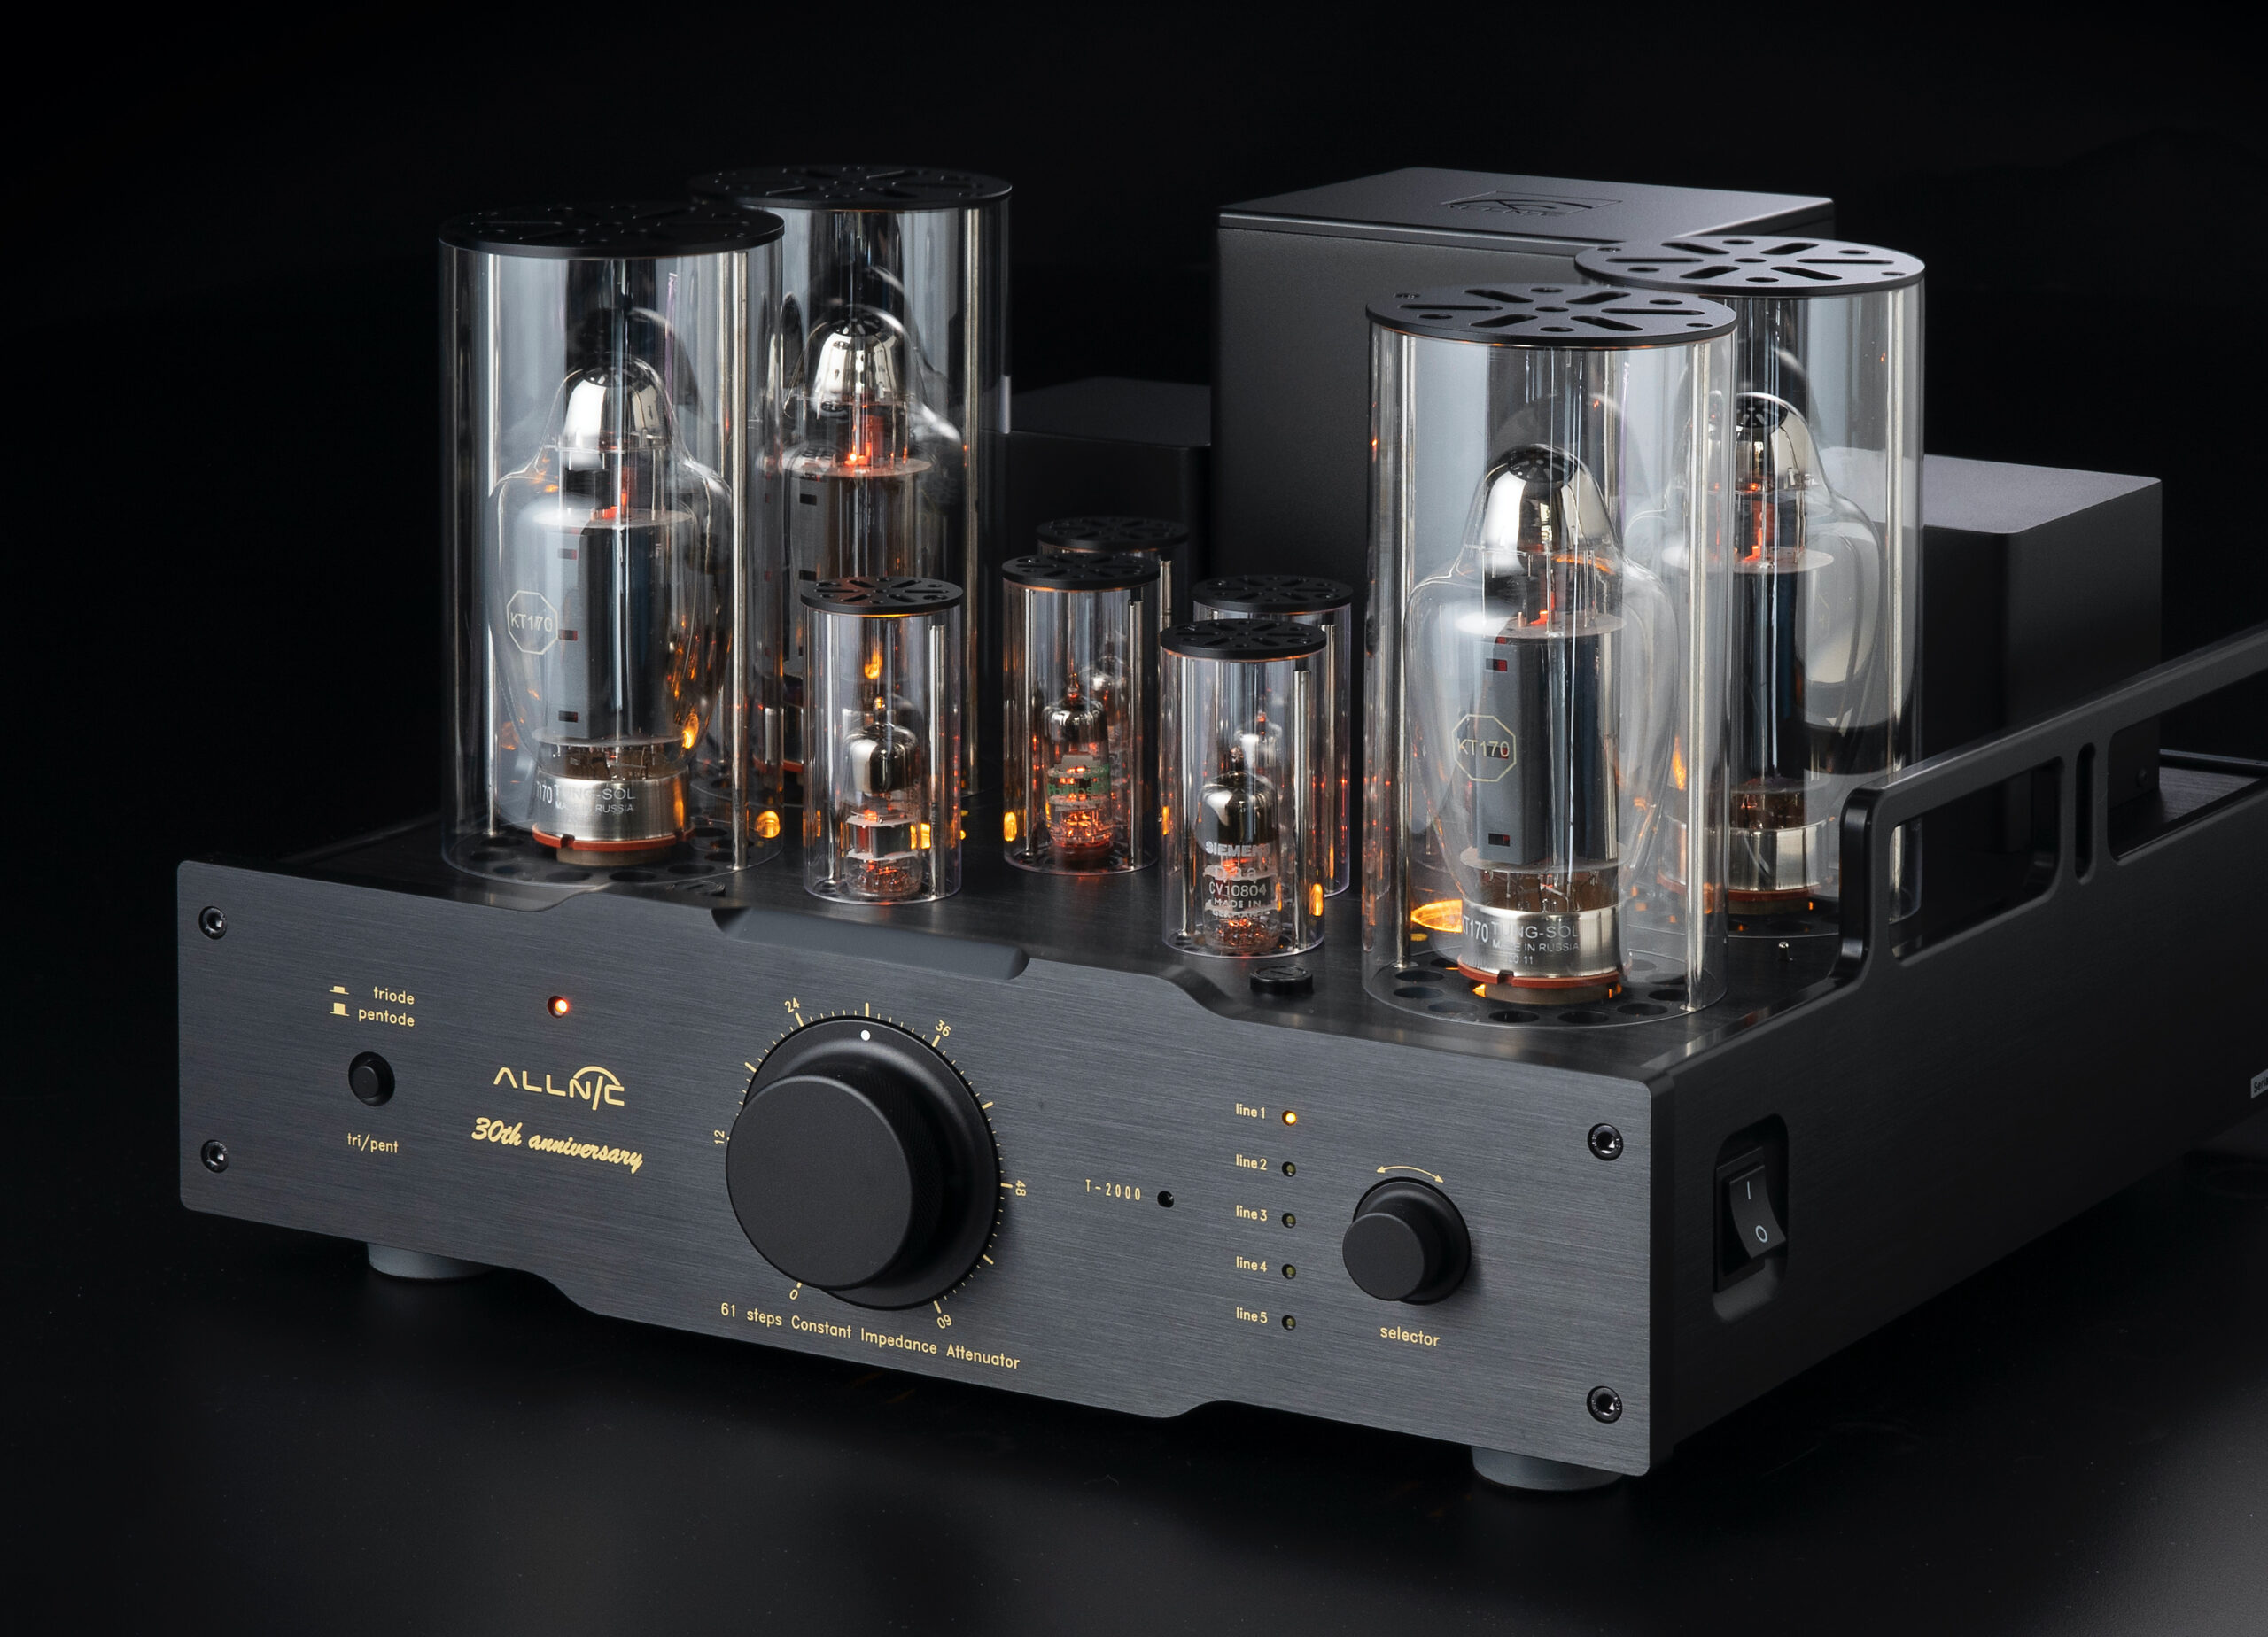 T-2000 30th Anniversary Stereo Integrated Amplifier